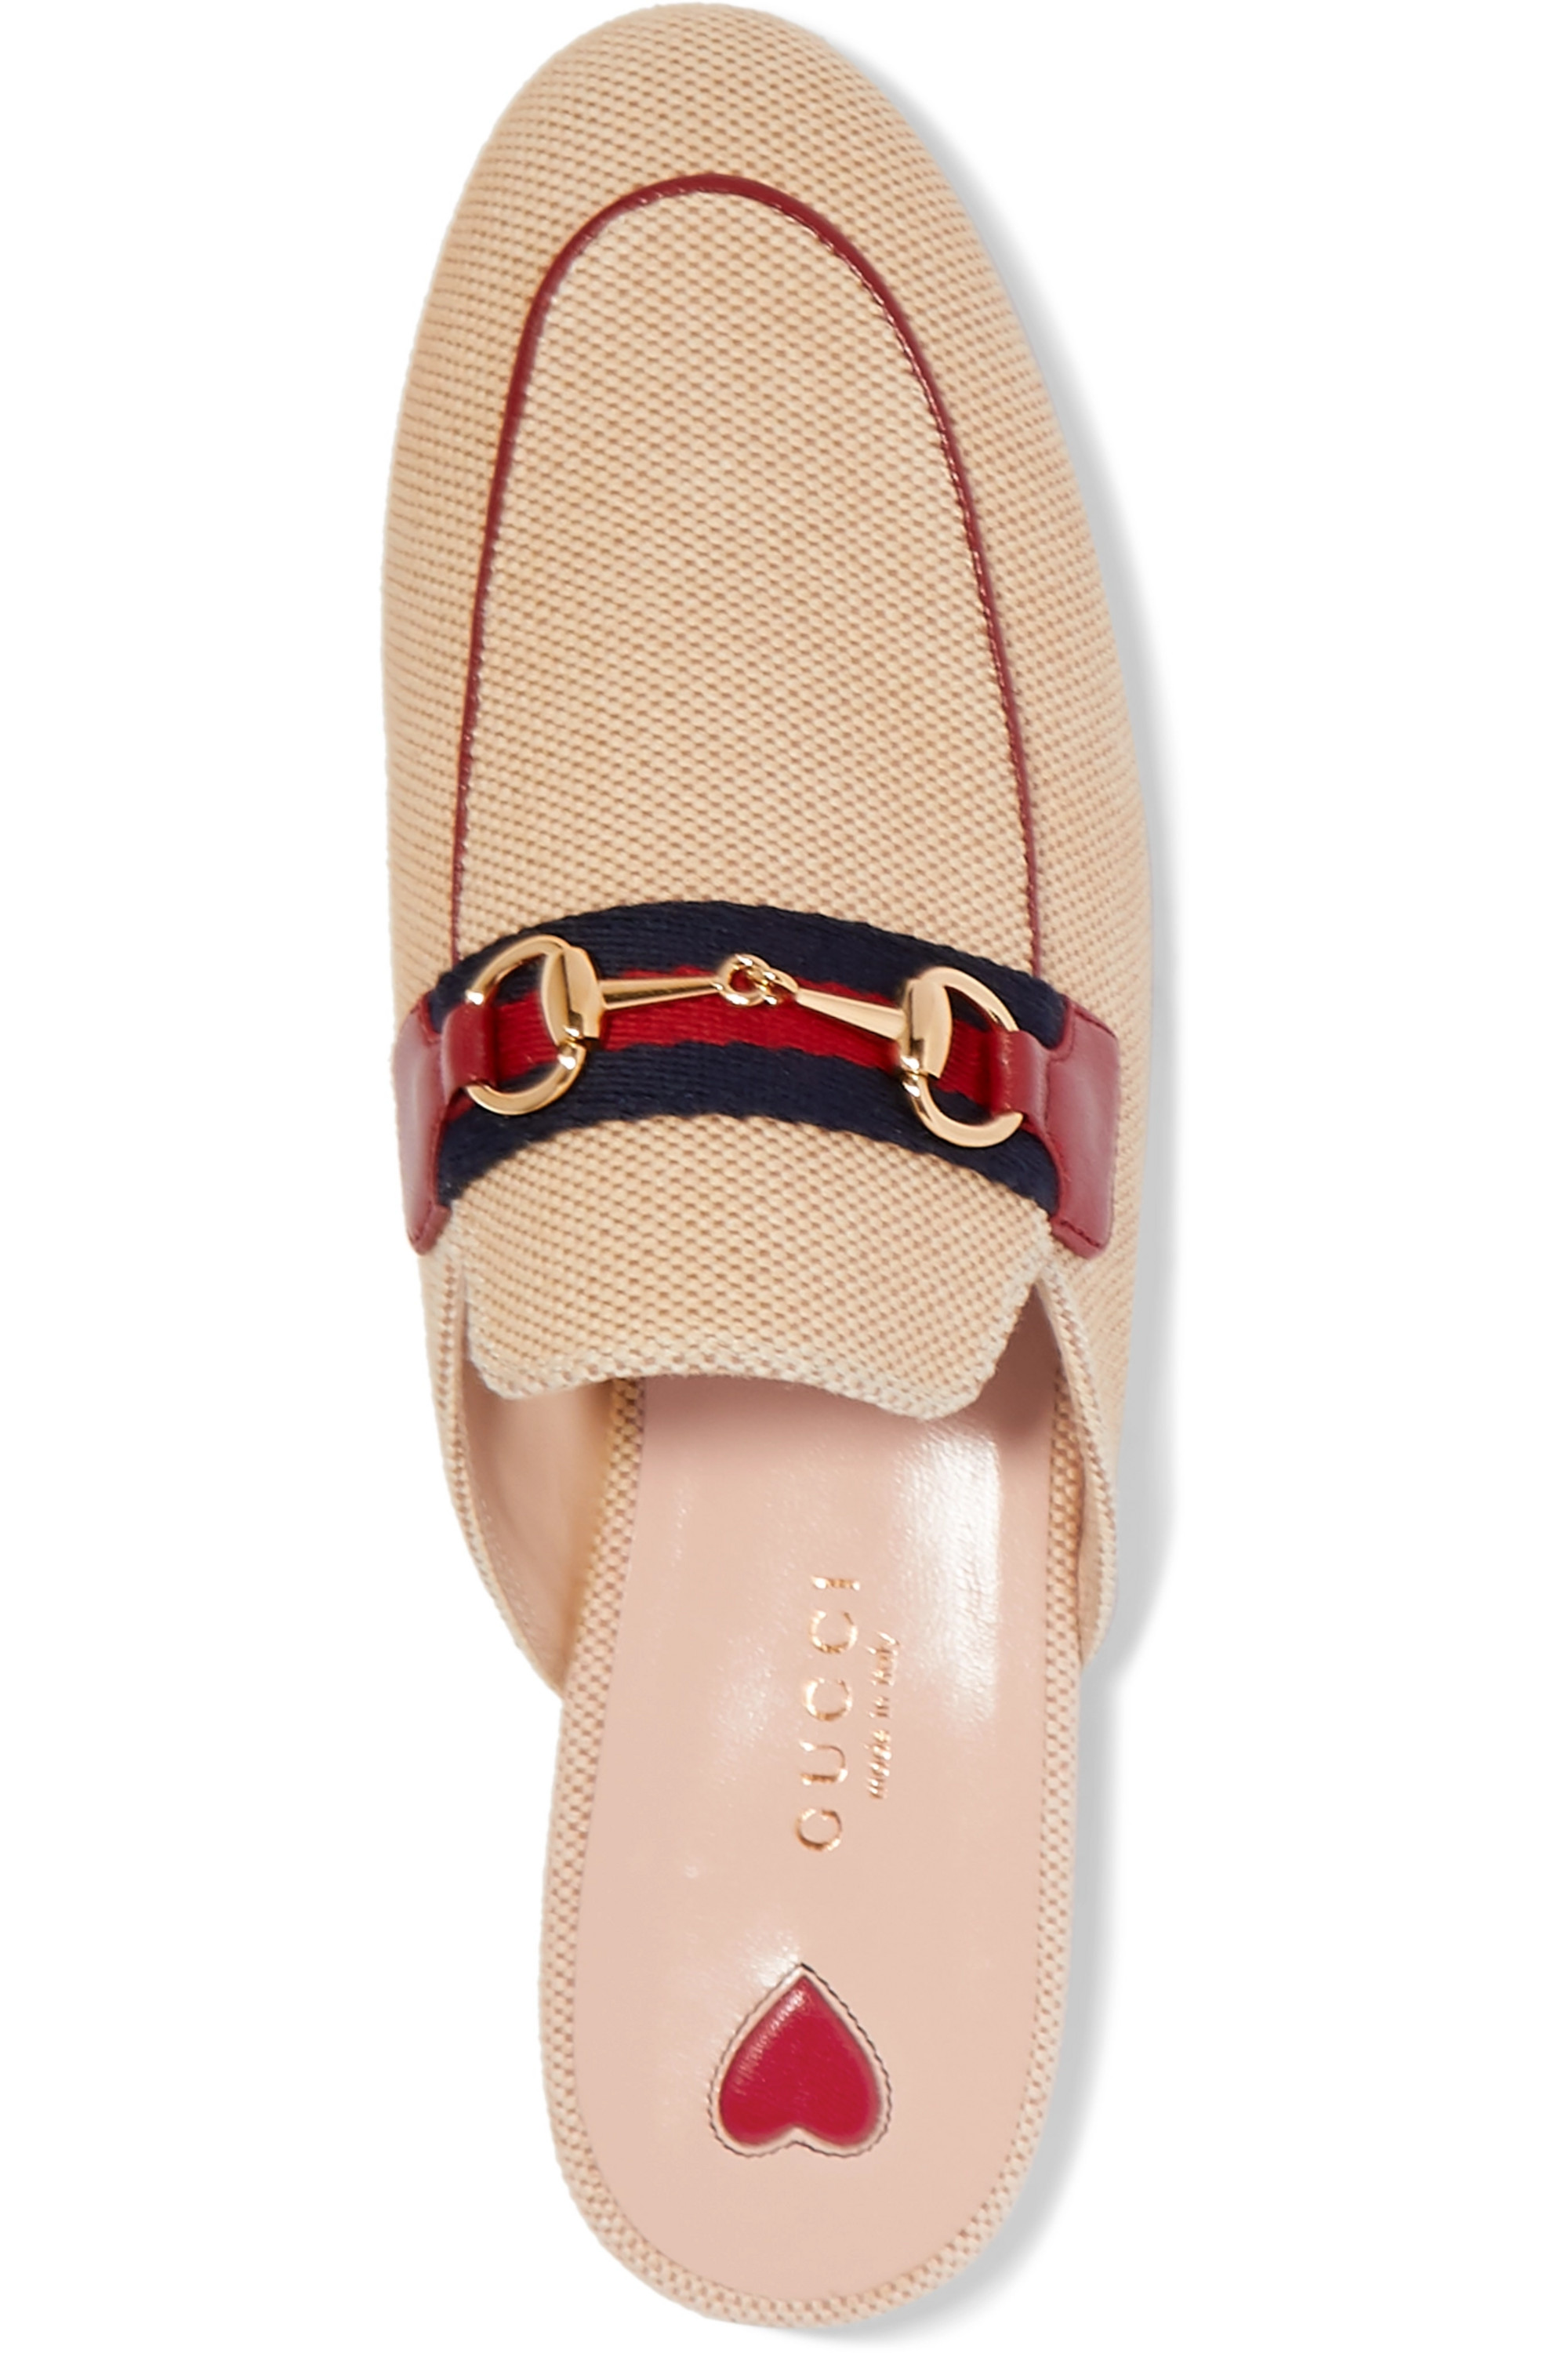 Gucci Princetown horsebit-detailed leather-trimmed canvas slippers